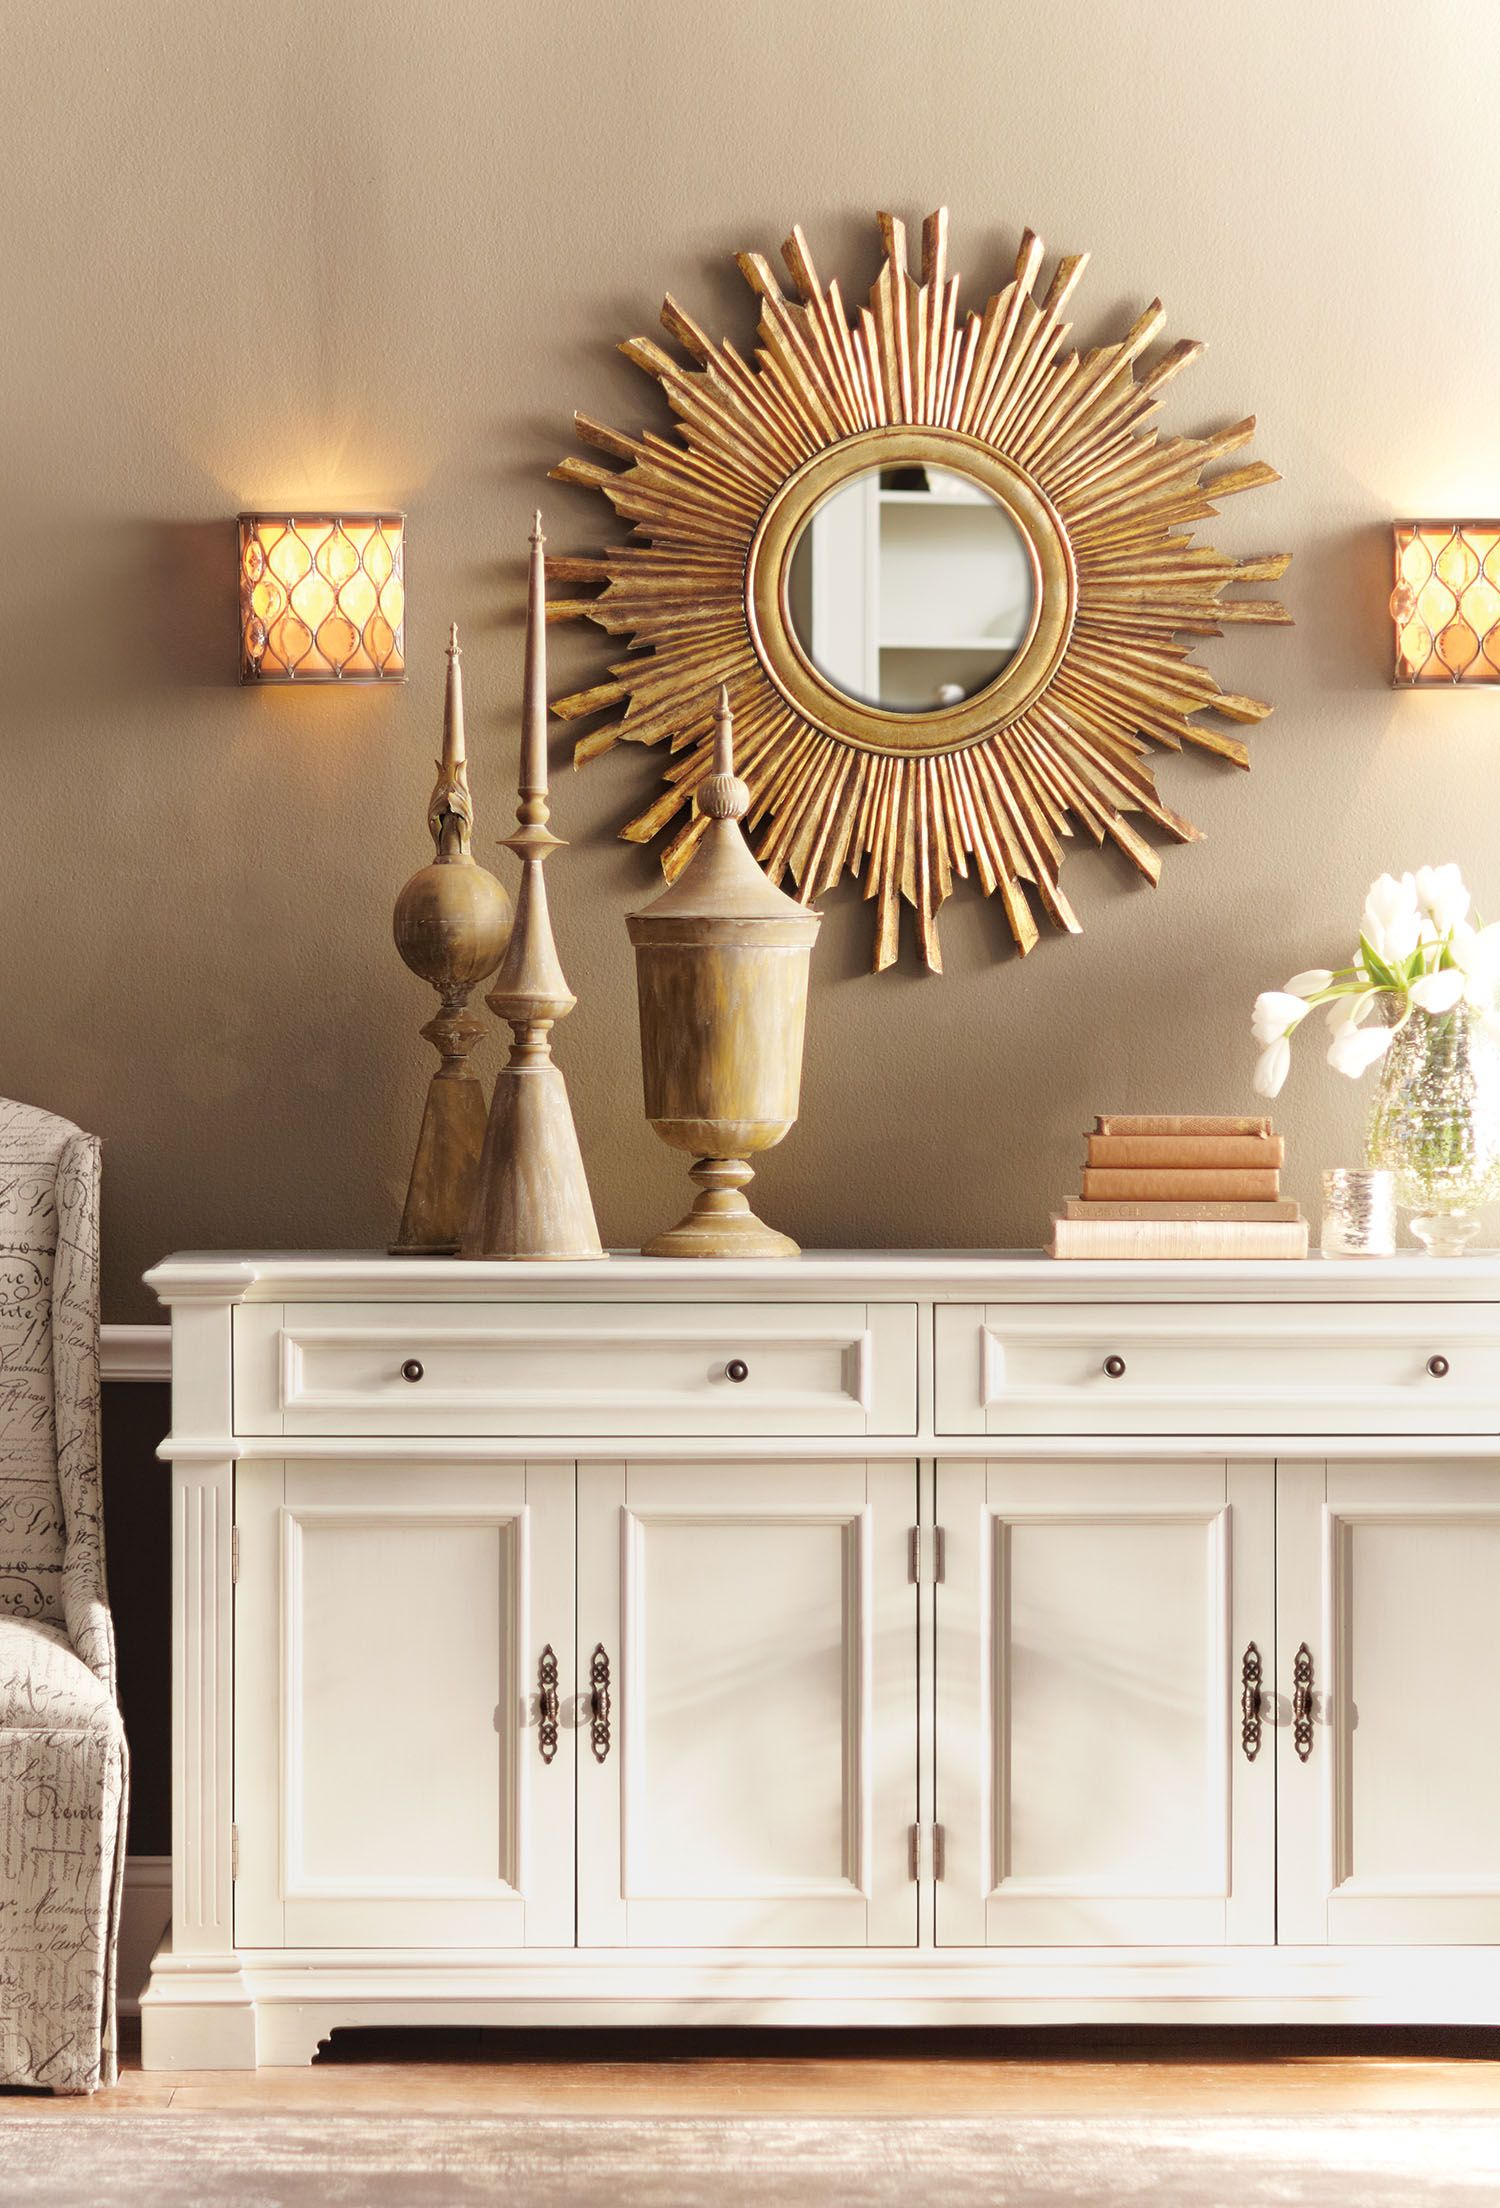 Gorgeous in gold This wall mirror is a statement making